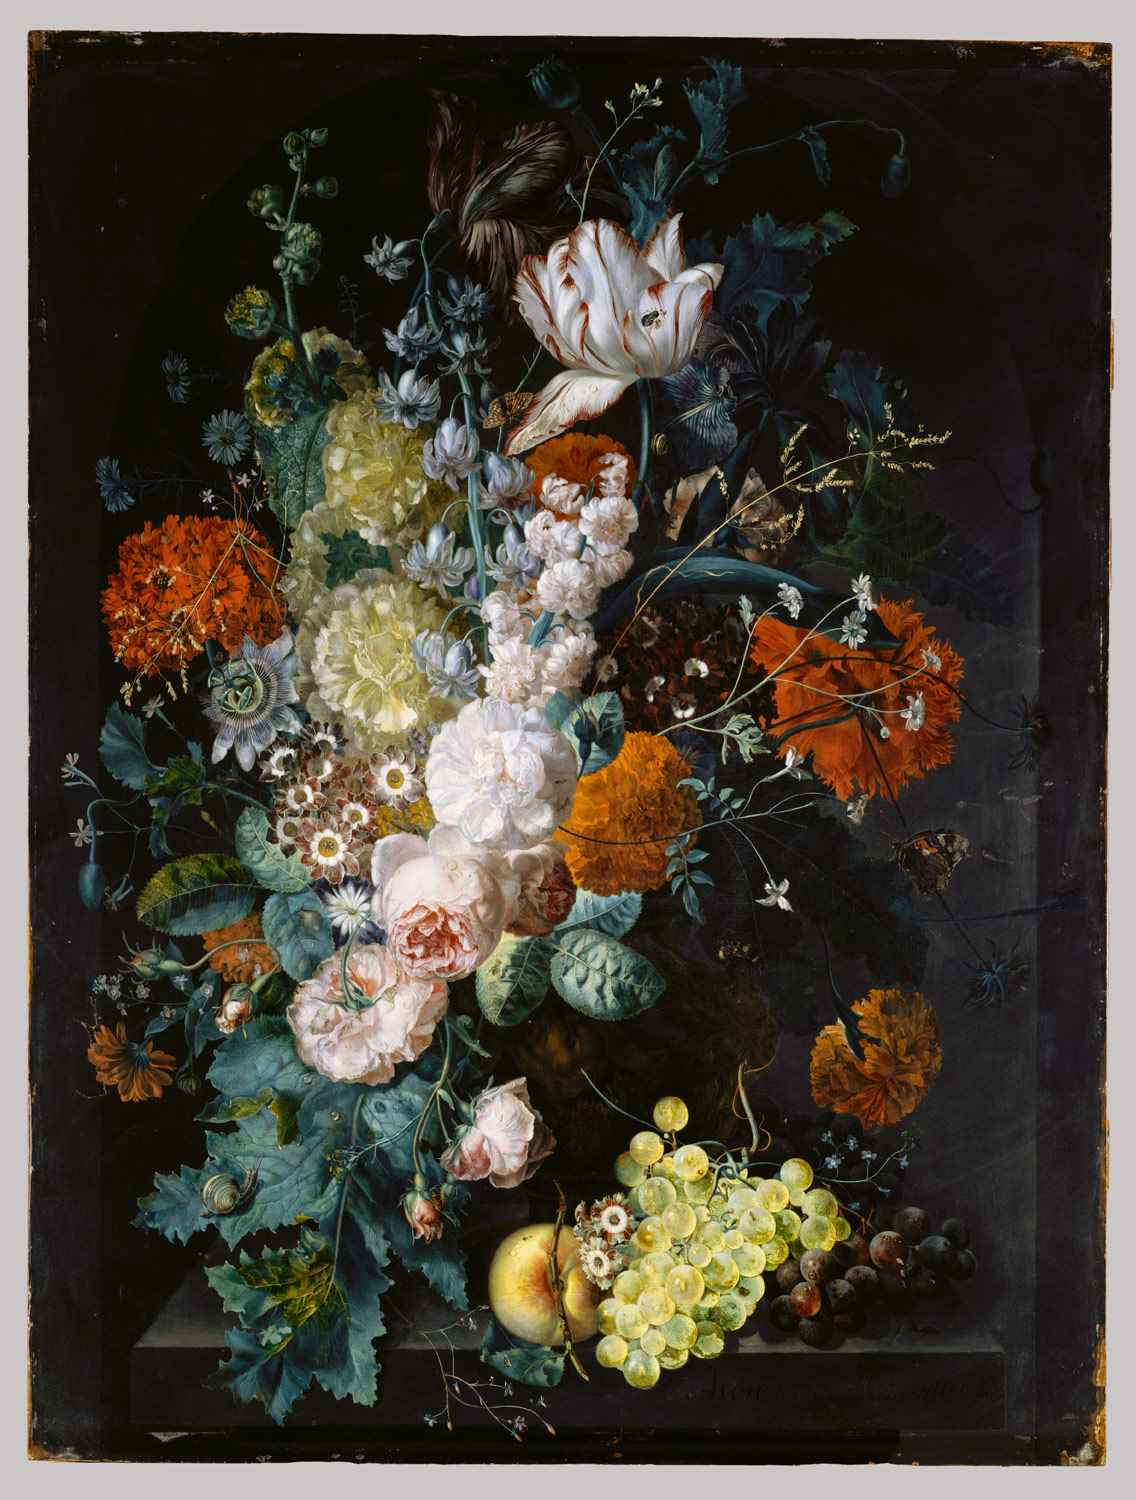 Drawn vase dead nature Flowers Northern Still Painting Life